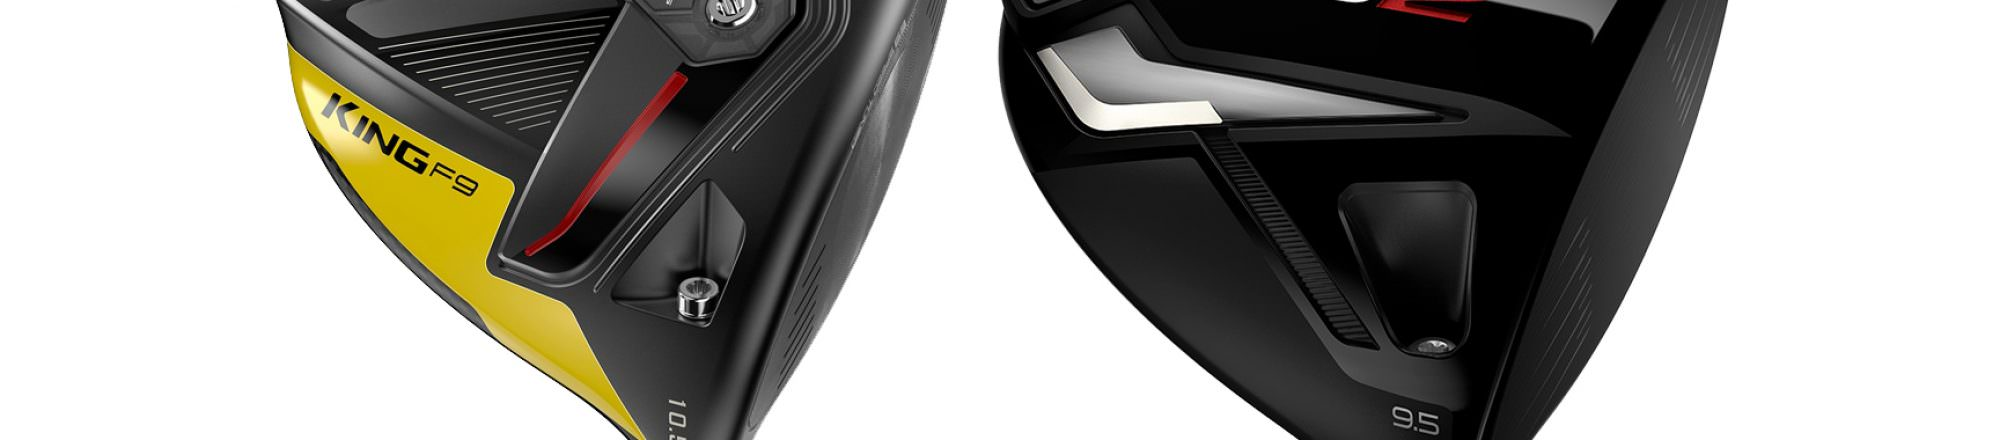 How does the Cobra F9 compare to the Titleist TS2?